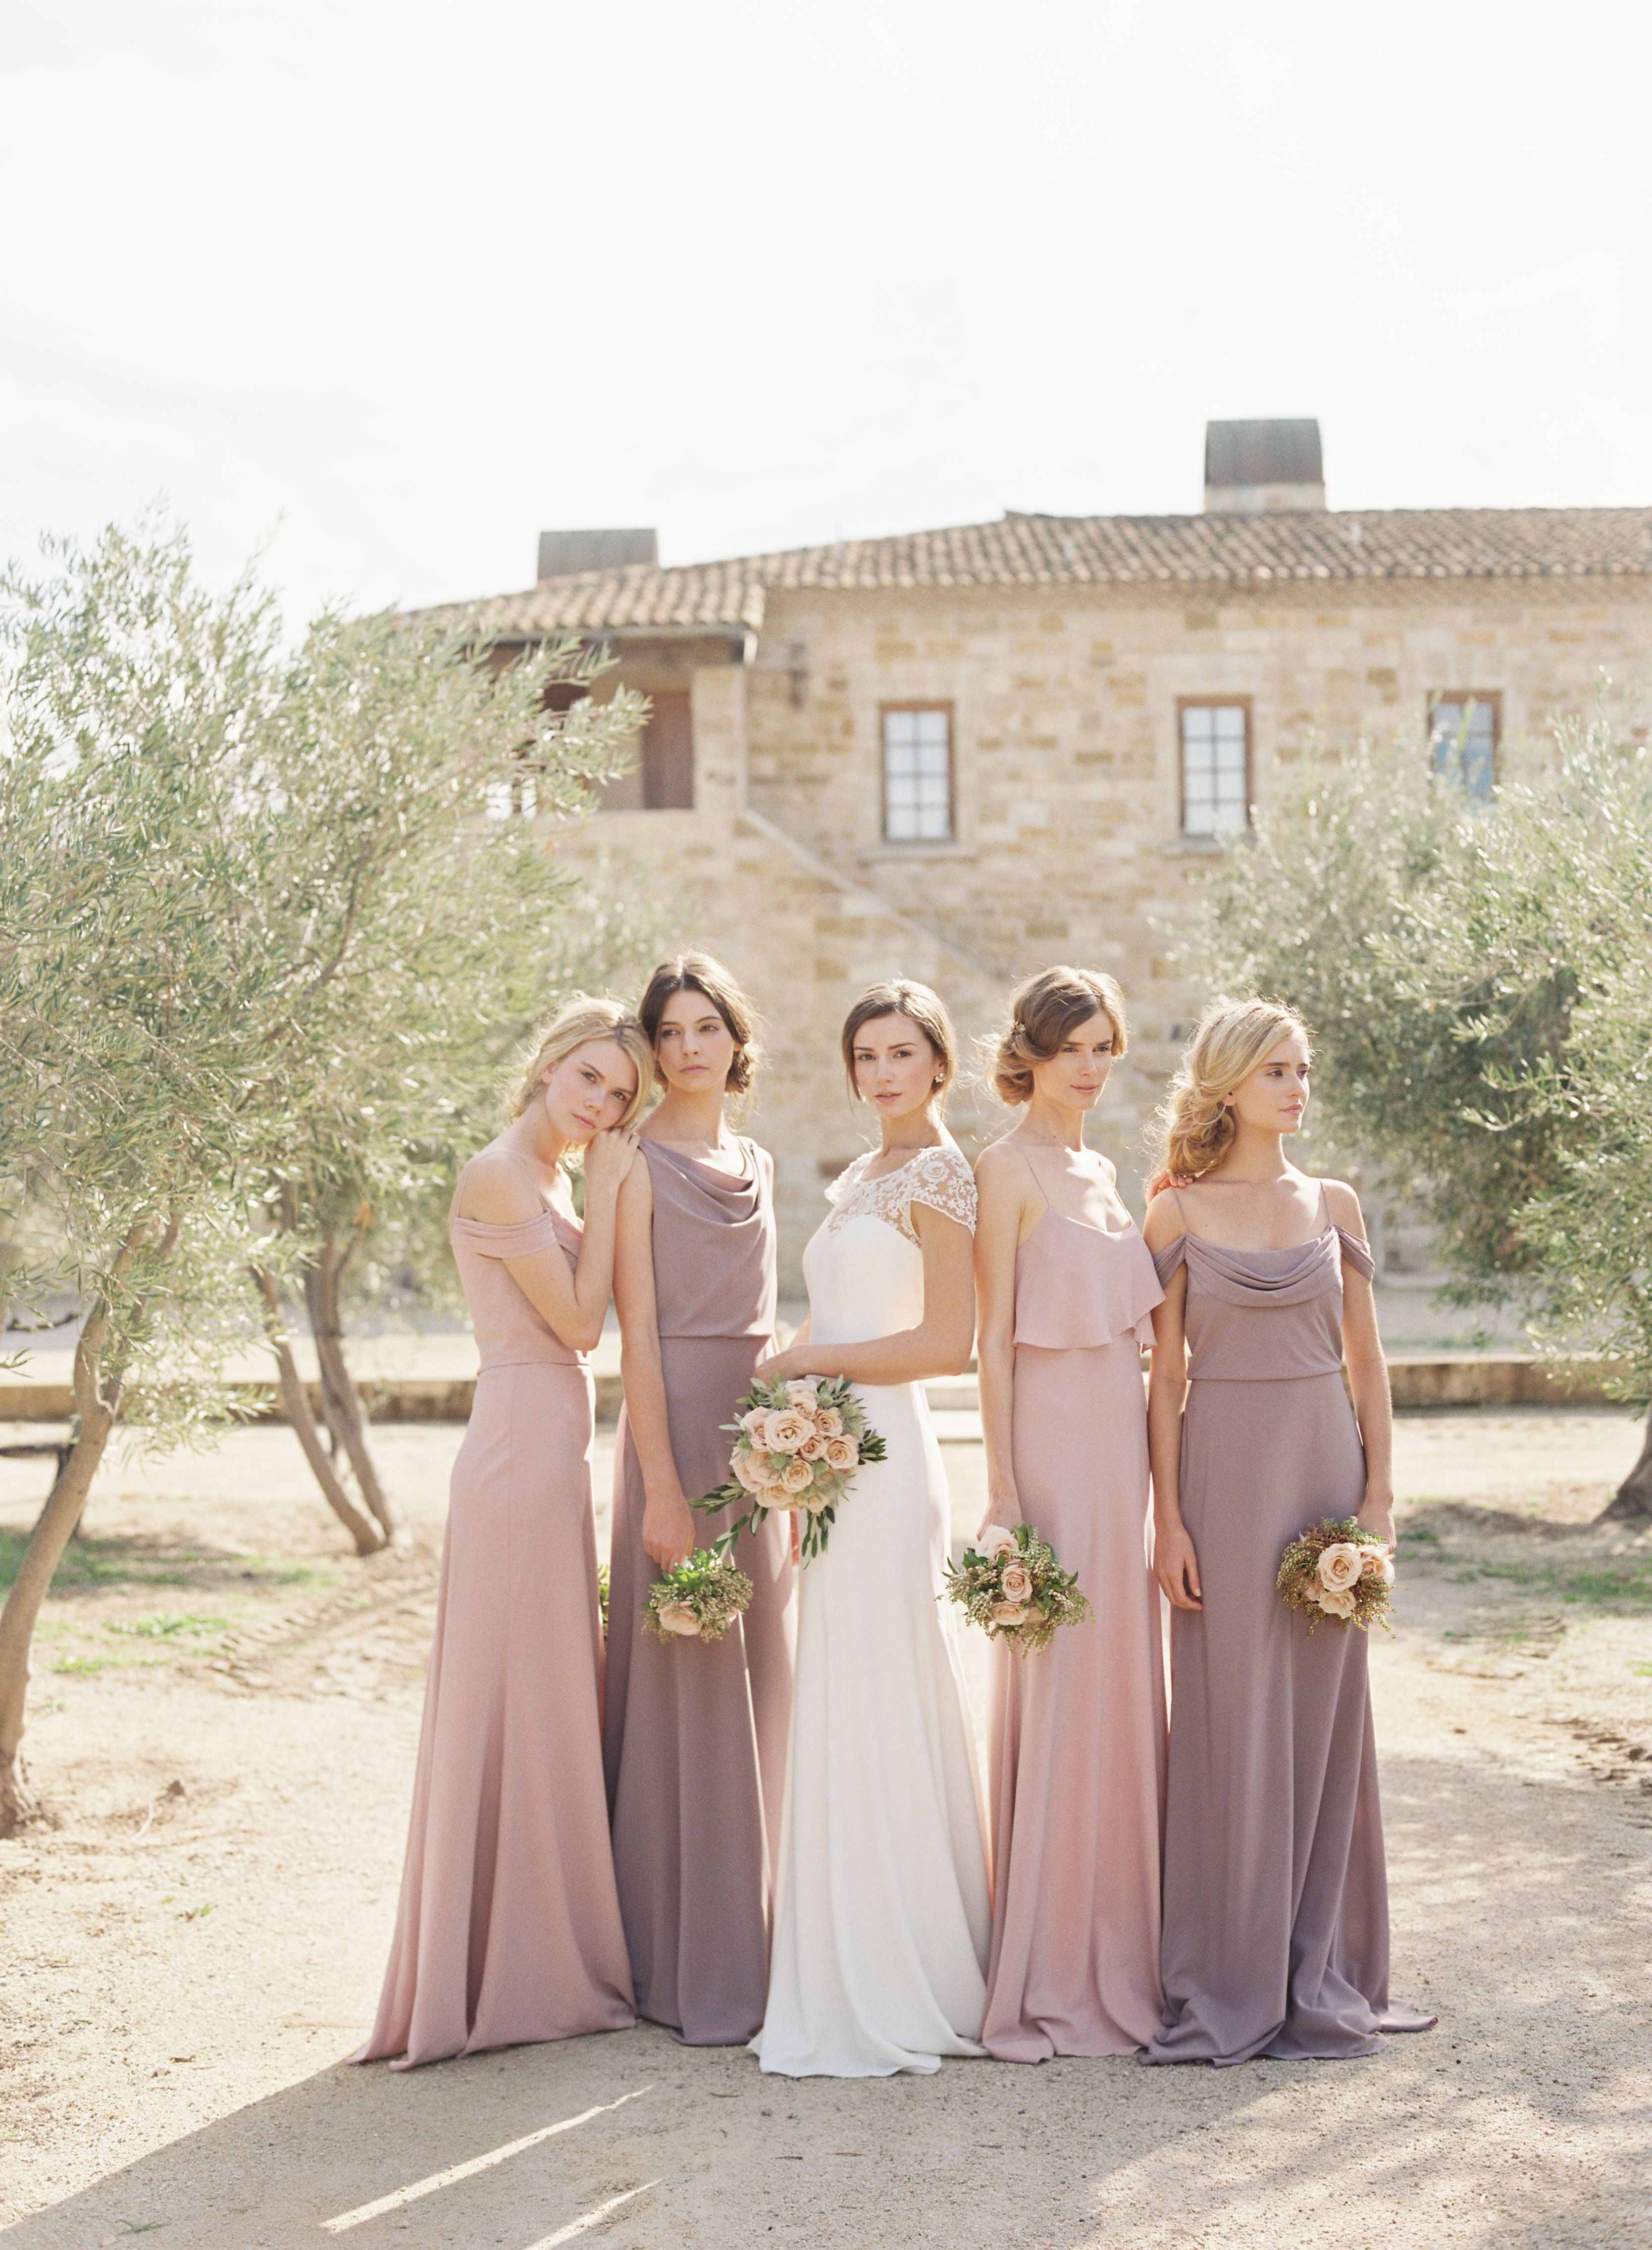 Bride hayden gown by jennyyoo bridesmaids crepe de chine bride hayden gown by jennyyoo bridesmaids crepe de chine bridesmaid dresses also ombrellifo Images